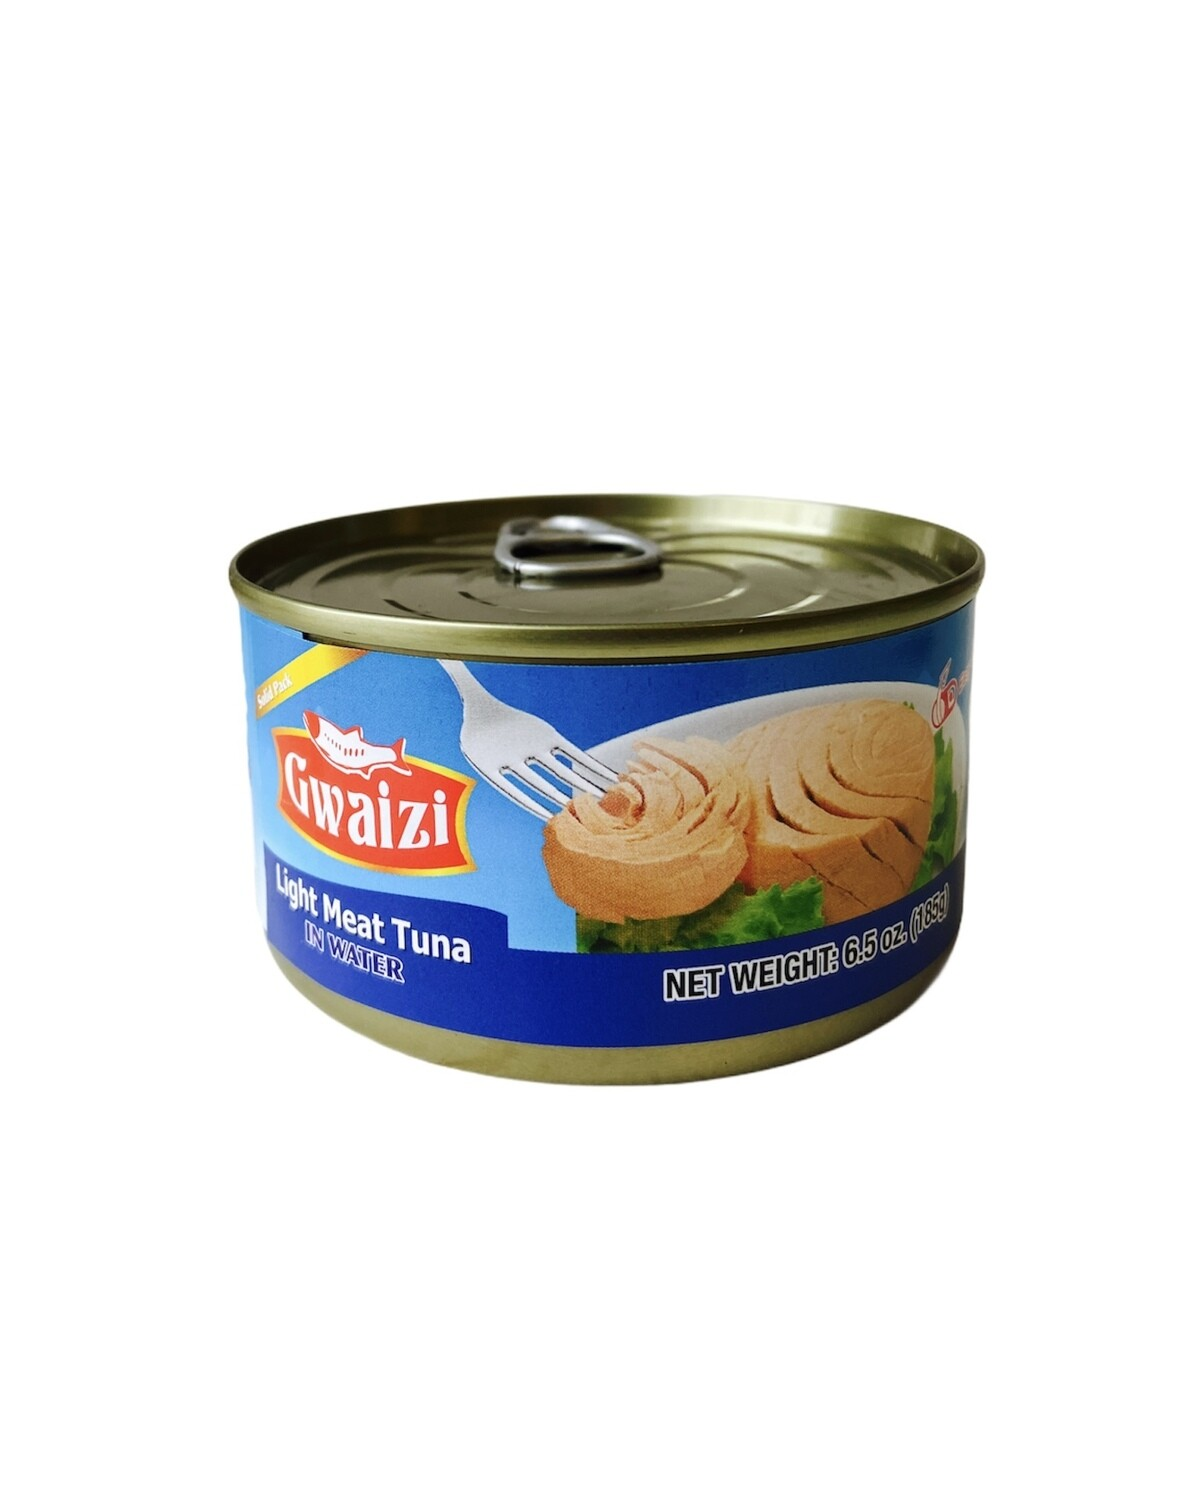 Gwaizi Tuna With Water 48x185g